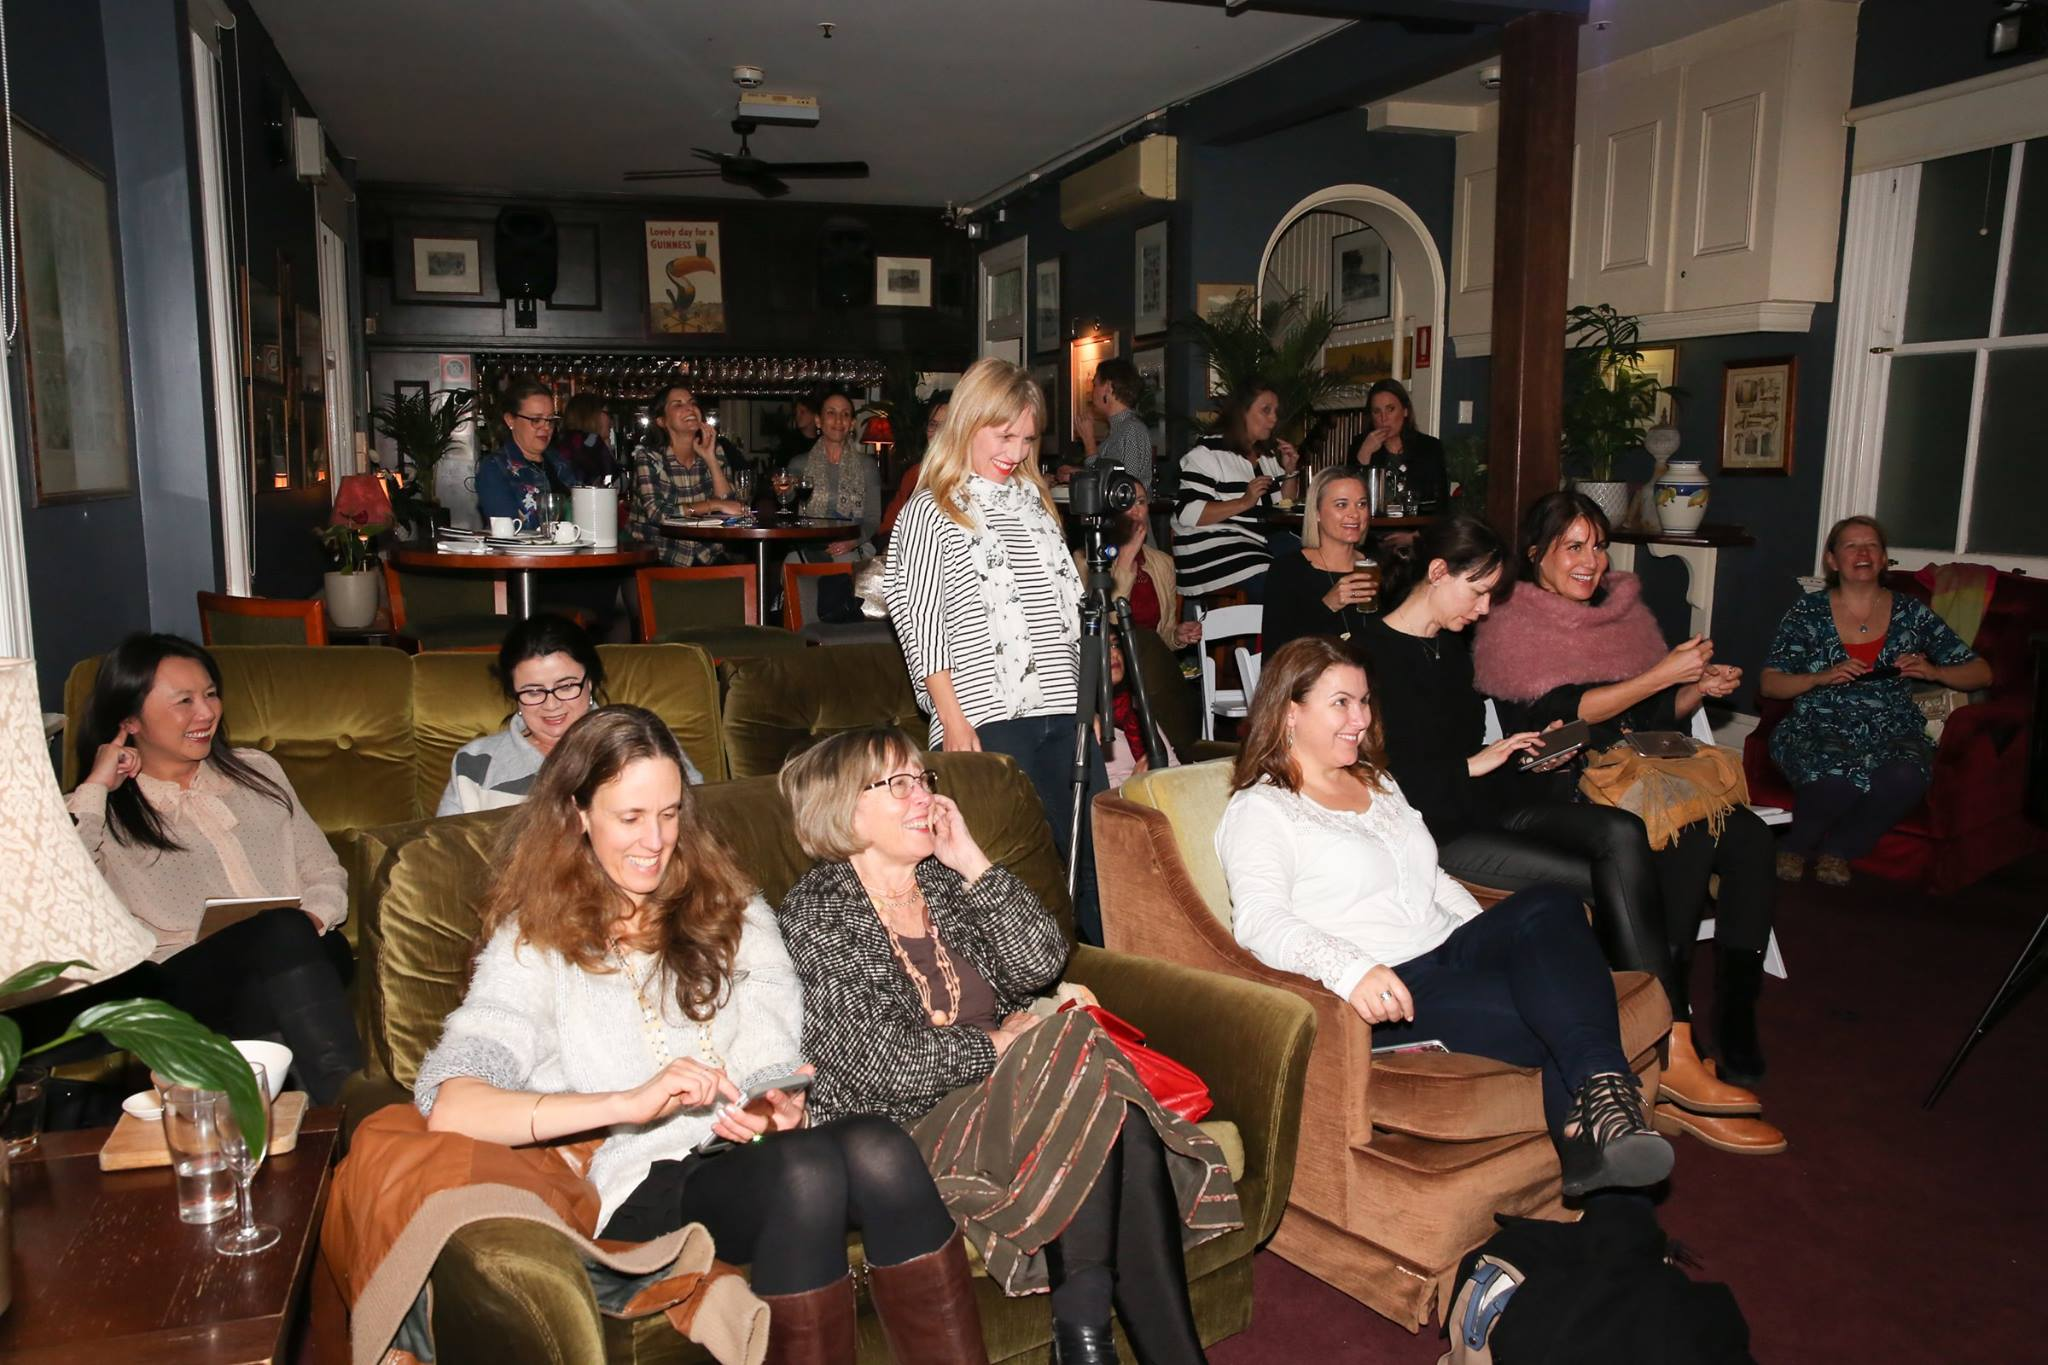 A roomful of creative mamas came to listen to the Emma Veiga-Malta, artist & founder Bespoke Backdrops, who shared her epic story, 'A Creative Journey - From Fabulous to Fear & Back Again'